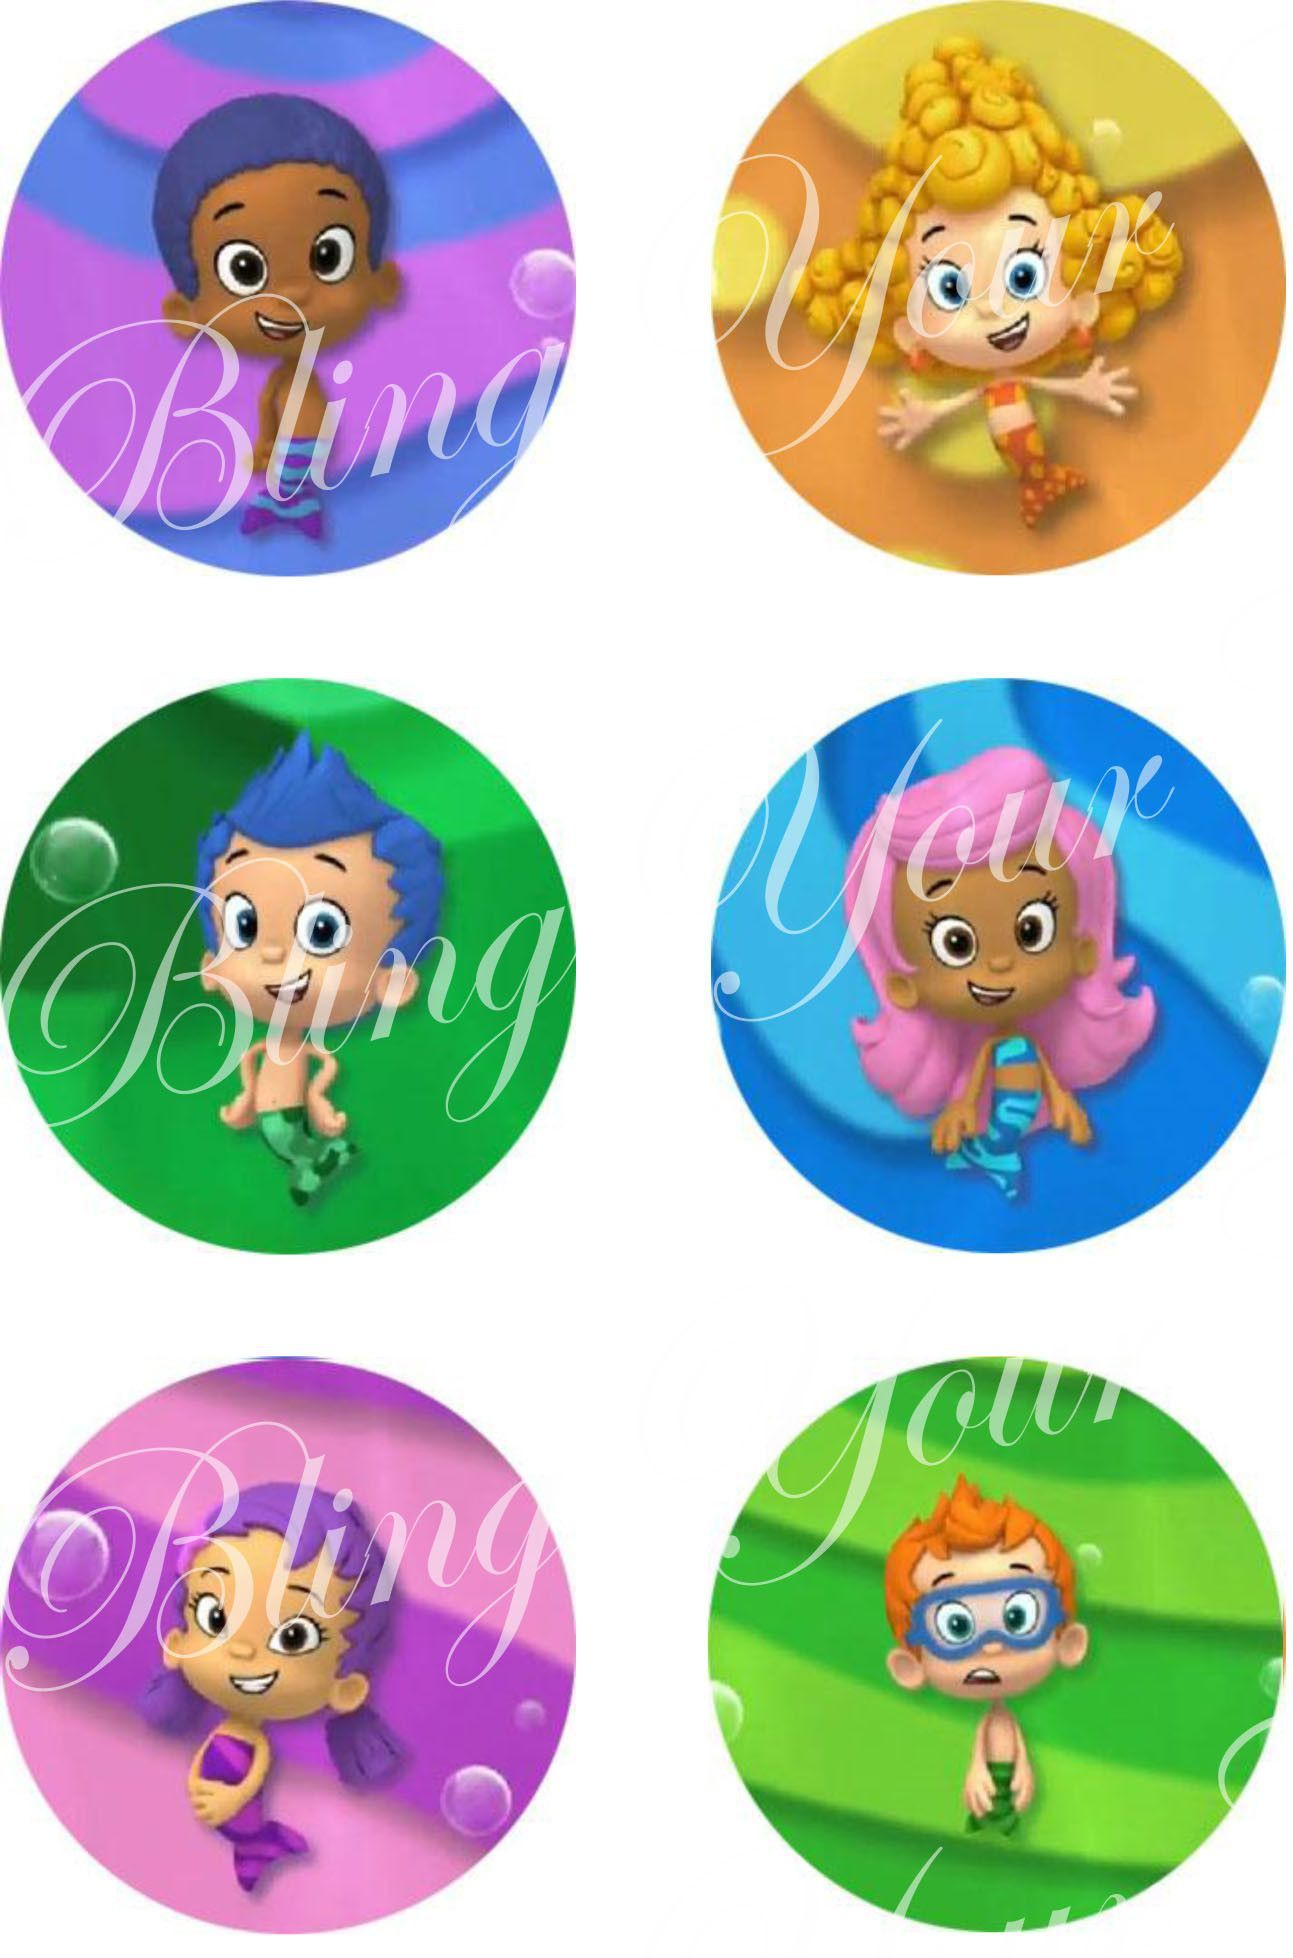 Bubble guppies character inspired edible icing cake decor toppers bubble guppies character inspired edible icing cake decor toppers bg3 amipublicfo Images